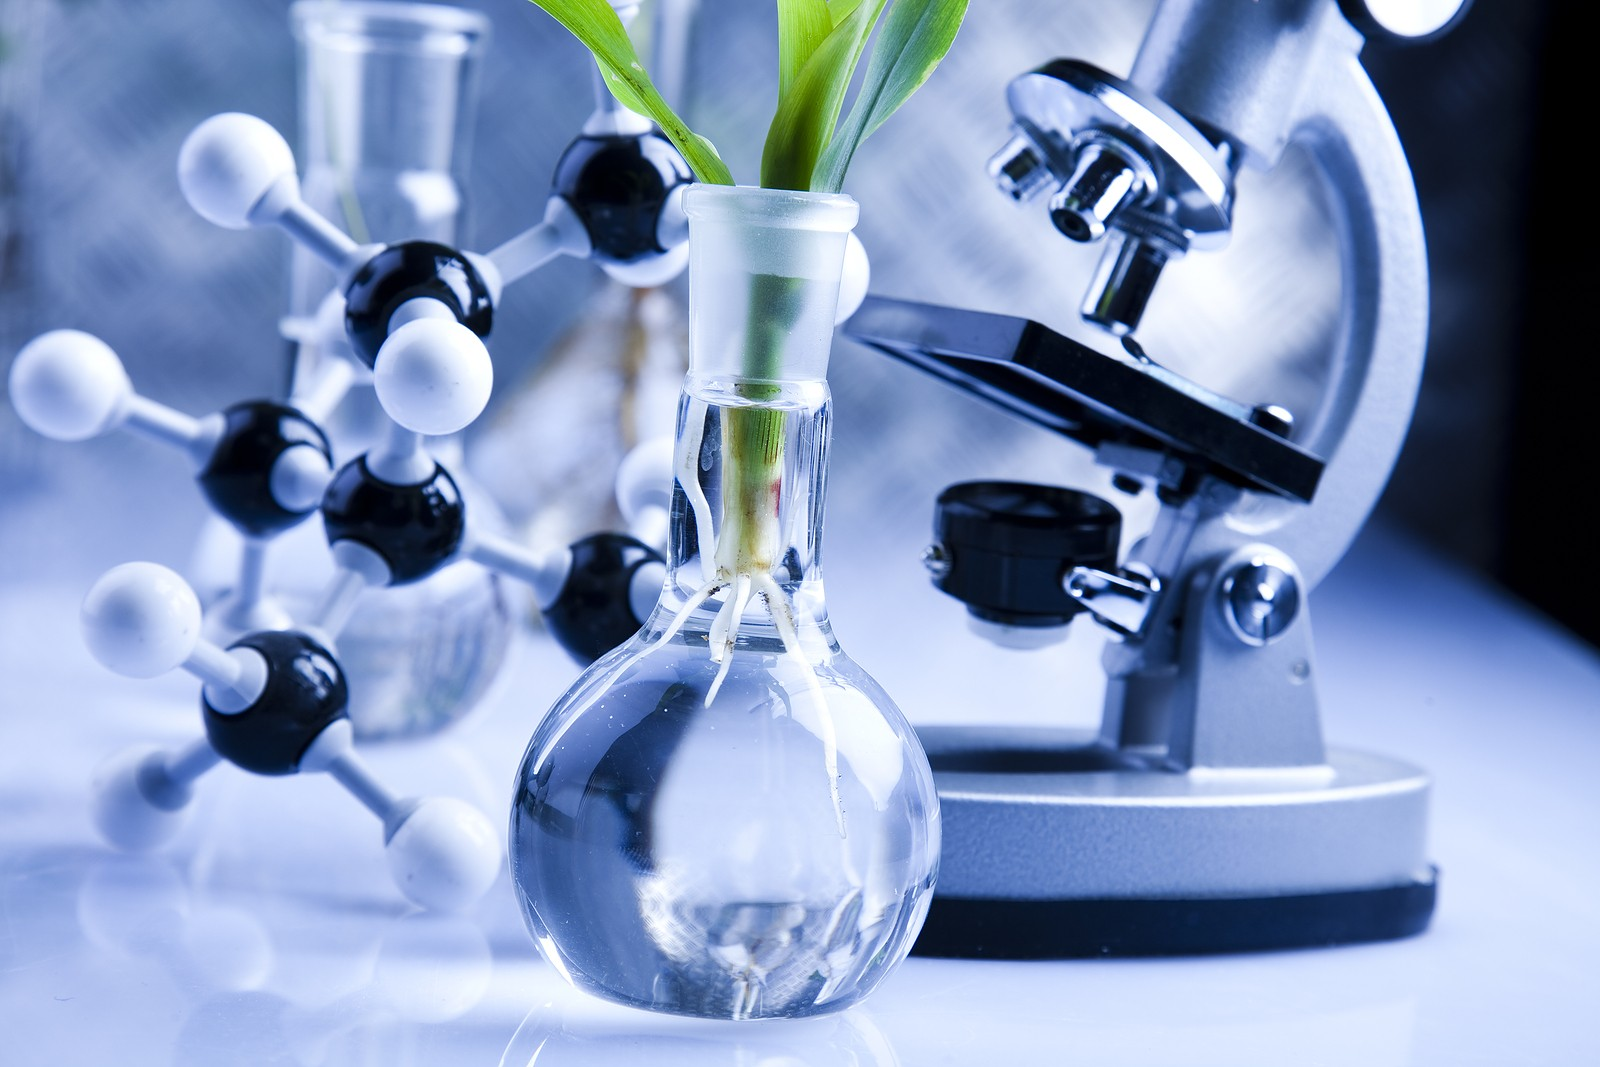 advantages of chemical medicine The advantages of using alternative medicines are that there are not side effects (usually) alternative medicine can heal the body completely but this takes time alternative medicine looks at the person, not just symptoms and main complaints.